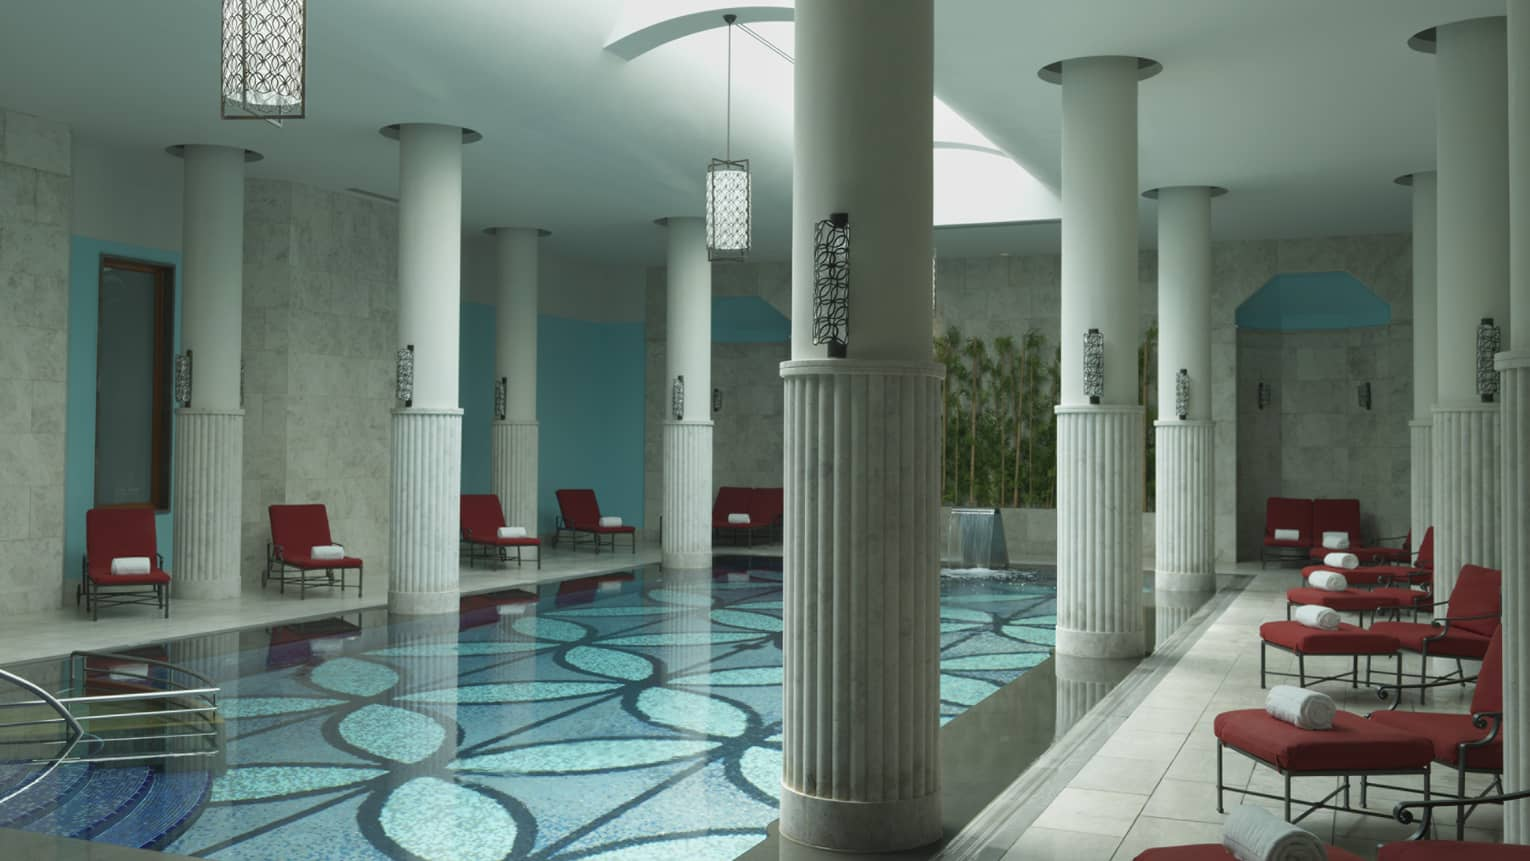 Tall white pillars around long indoor swimming pool